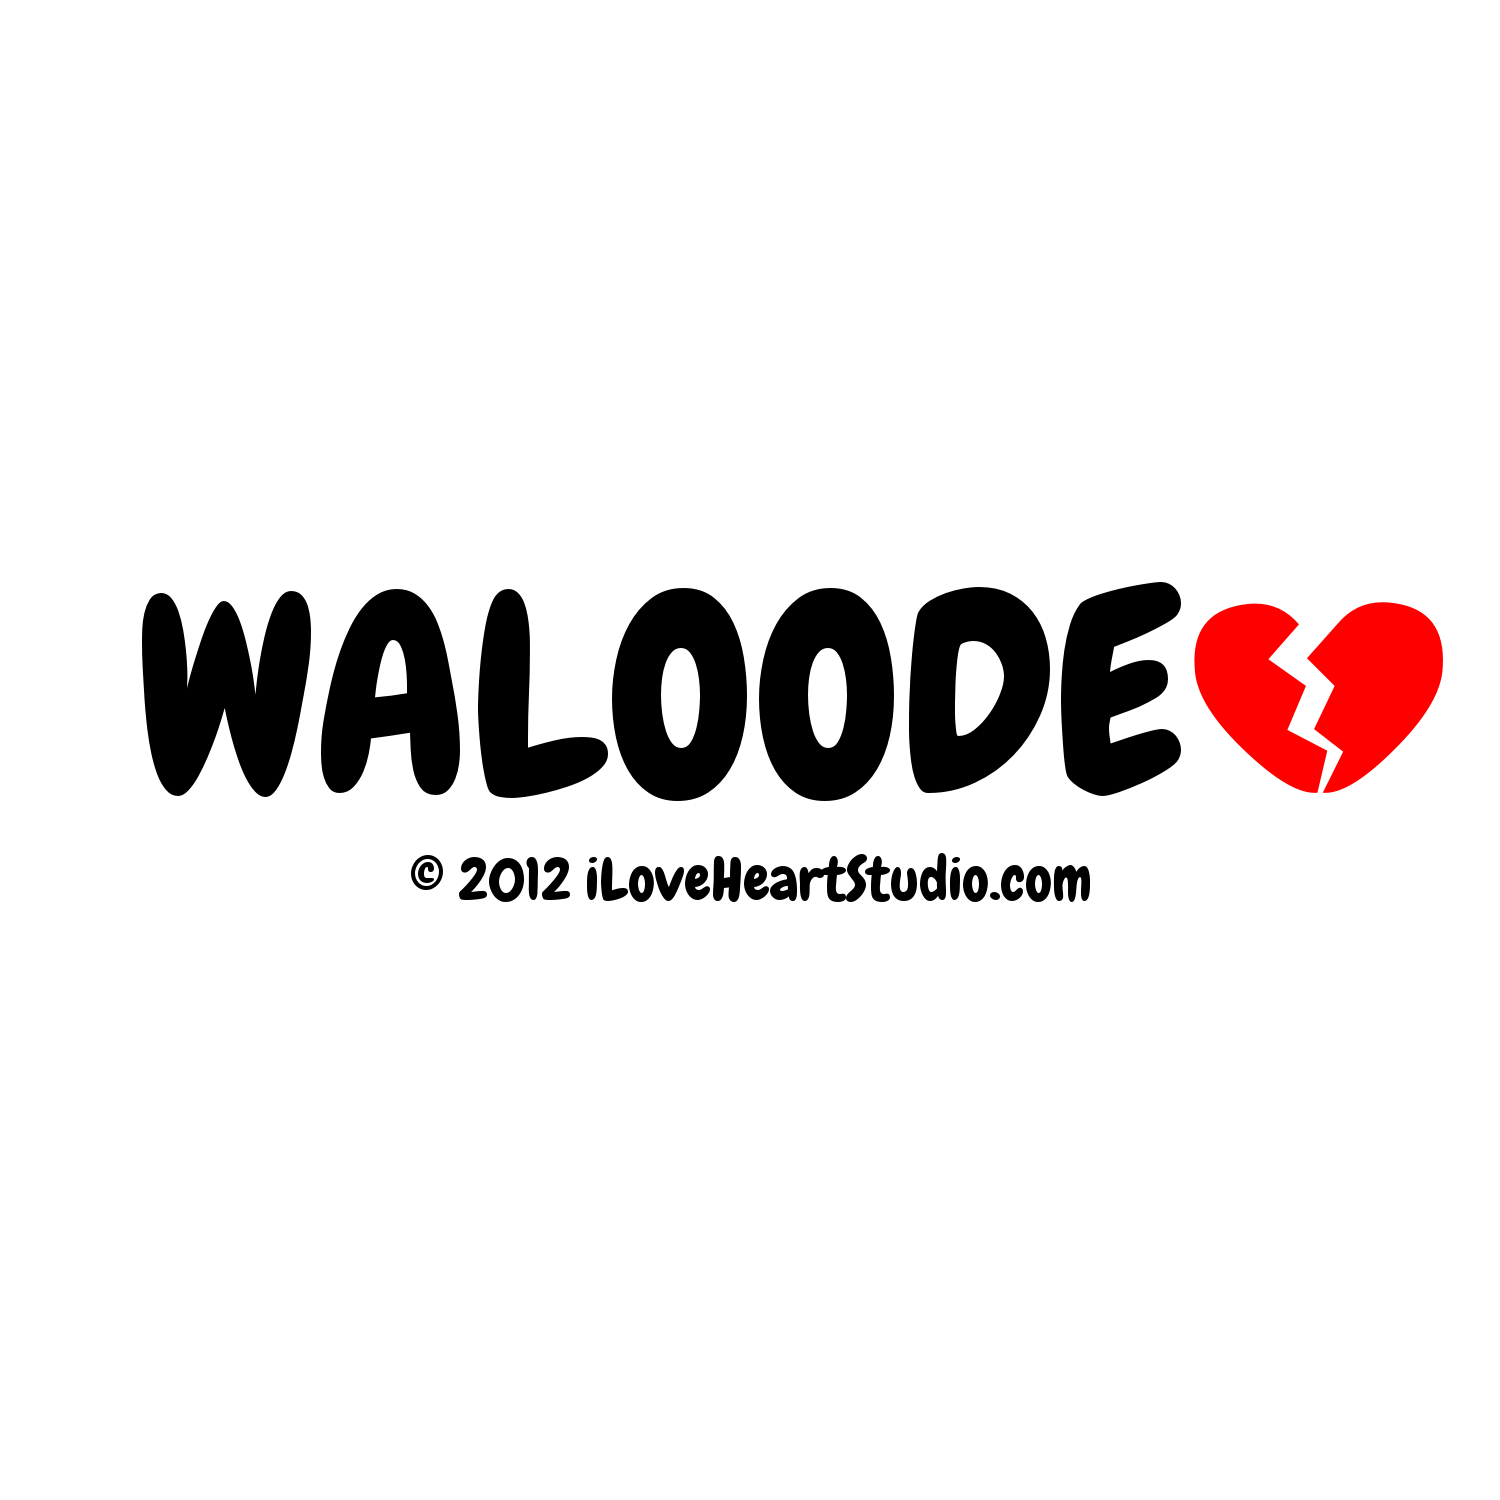 Waloode Broken Heart Design On T Shirt Poster Mug